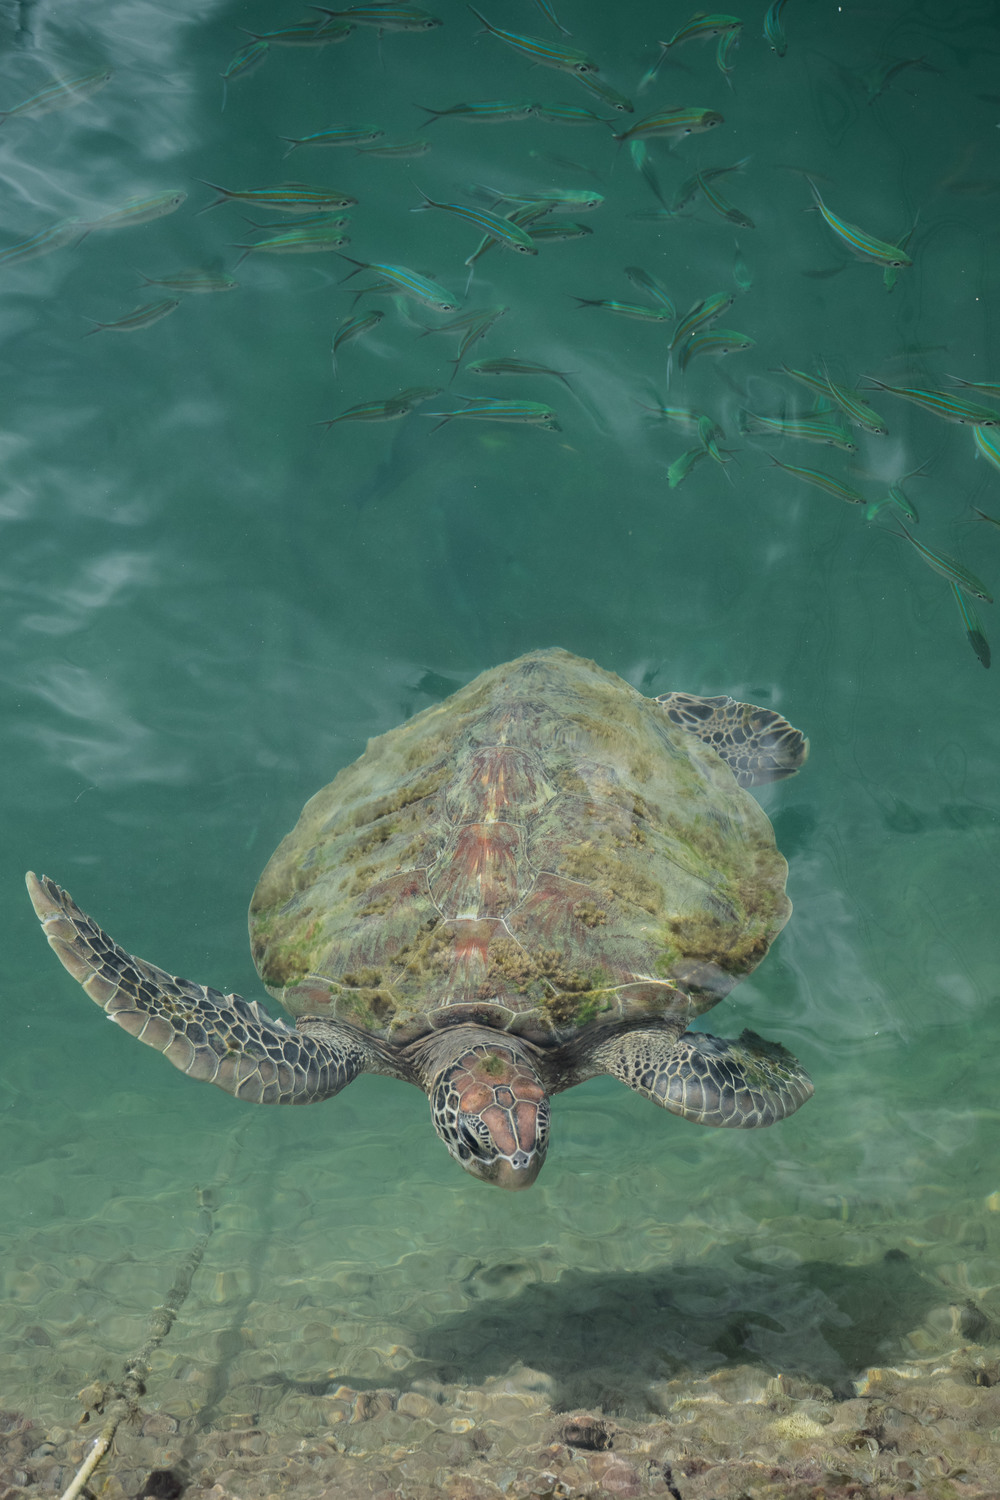 This little guy said hi while we were going around the SEAFDEC Marine Station.